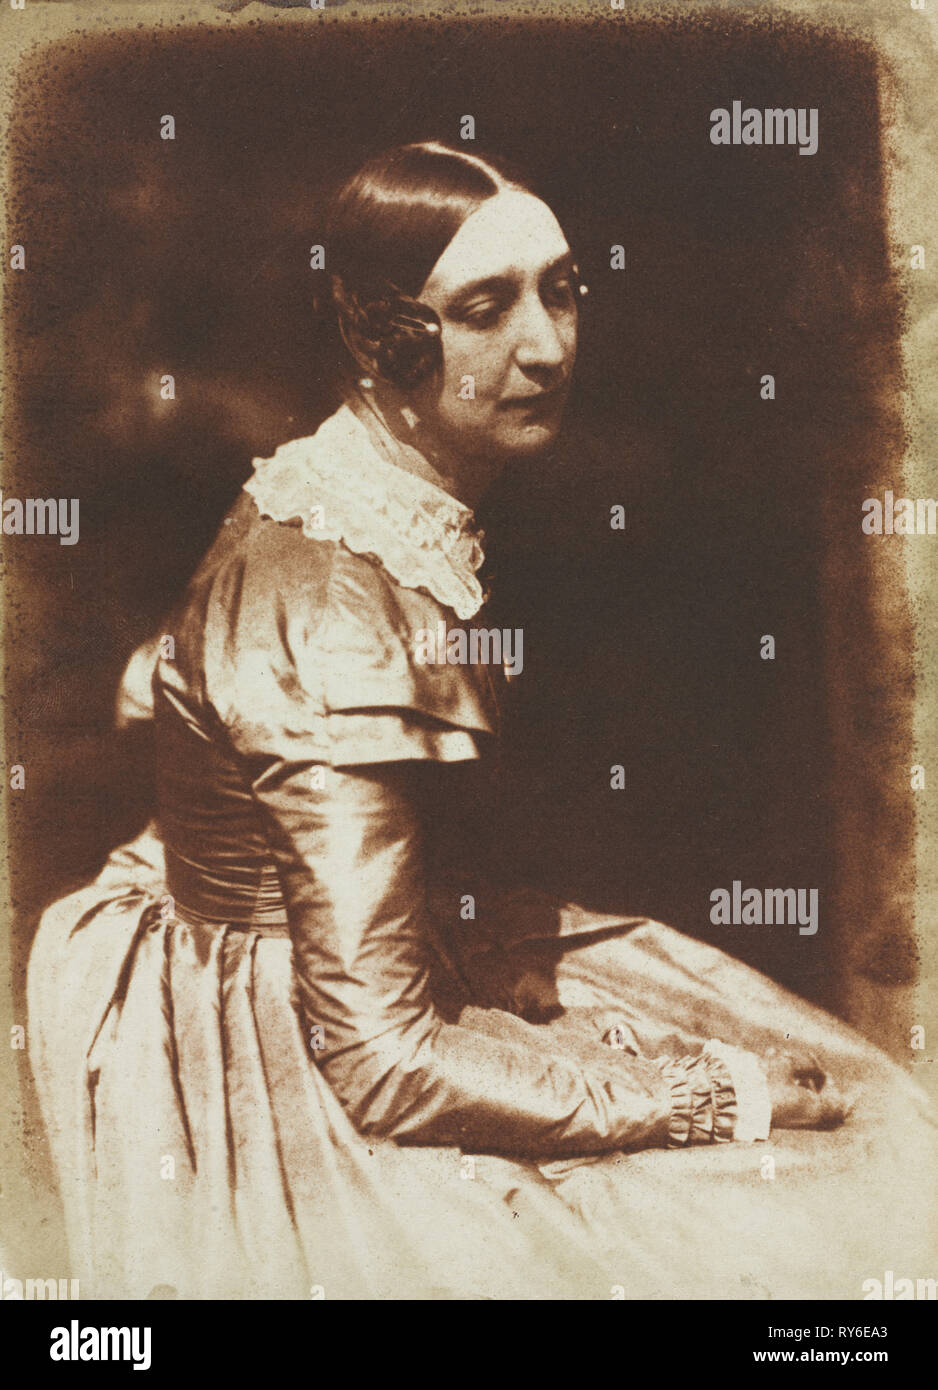 Elizabeth Rigby, later Lady Eastlake (1809-1893), c. 1844-1845. David Octavius Hill (British, 1802-1870), and Robert Adamson (British, 1821-1848). Salted paper print from calotype negative; image: 21.5 x 15.6 cm (8 7/16 x 6 1/8 in.); matted: 45.7 x 35.6 cm (18 x 14 in - Stock Image